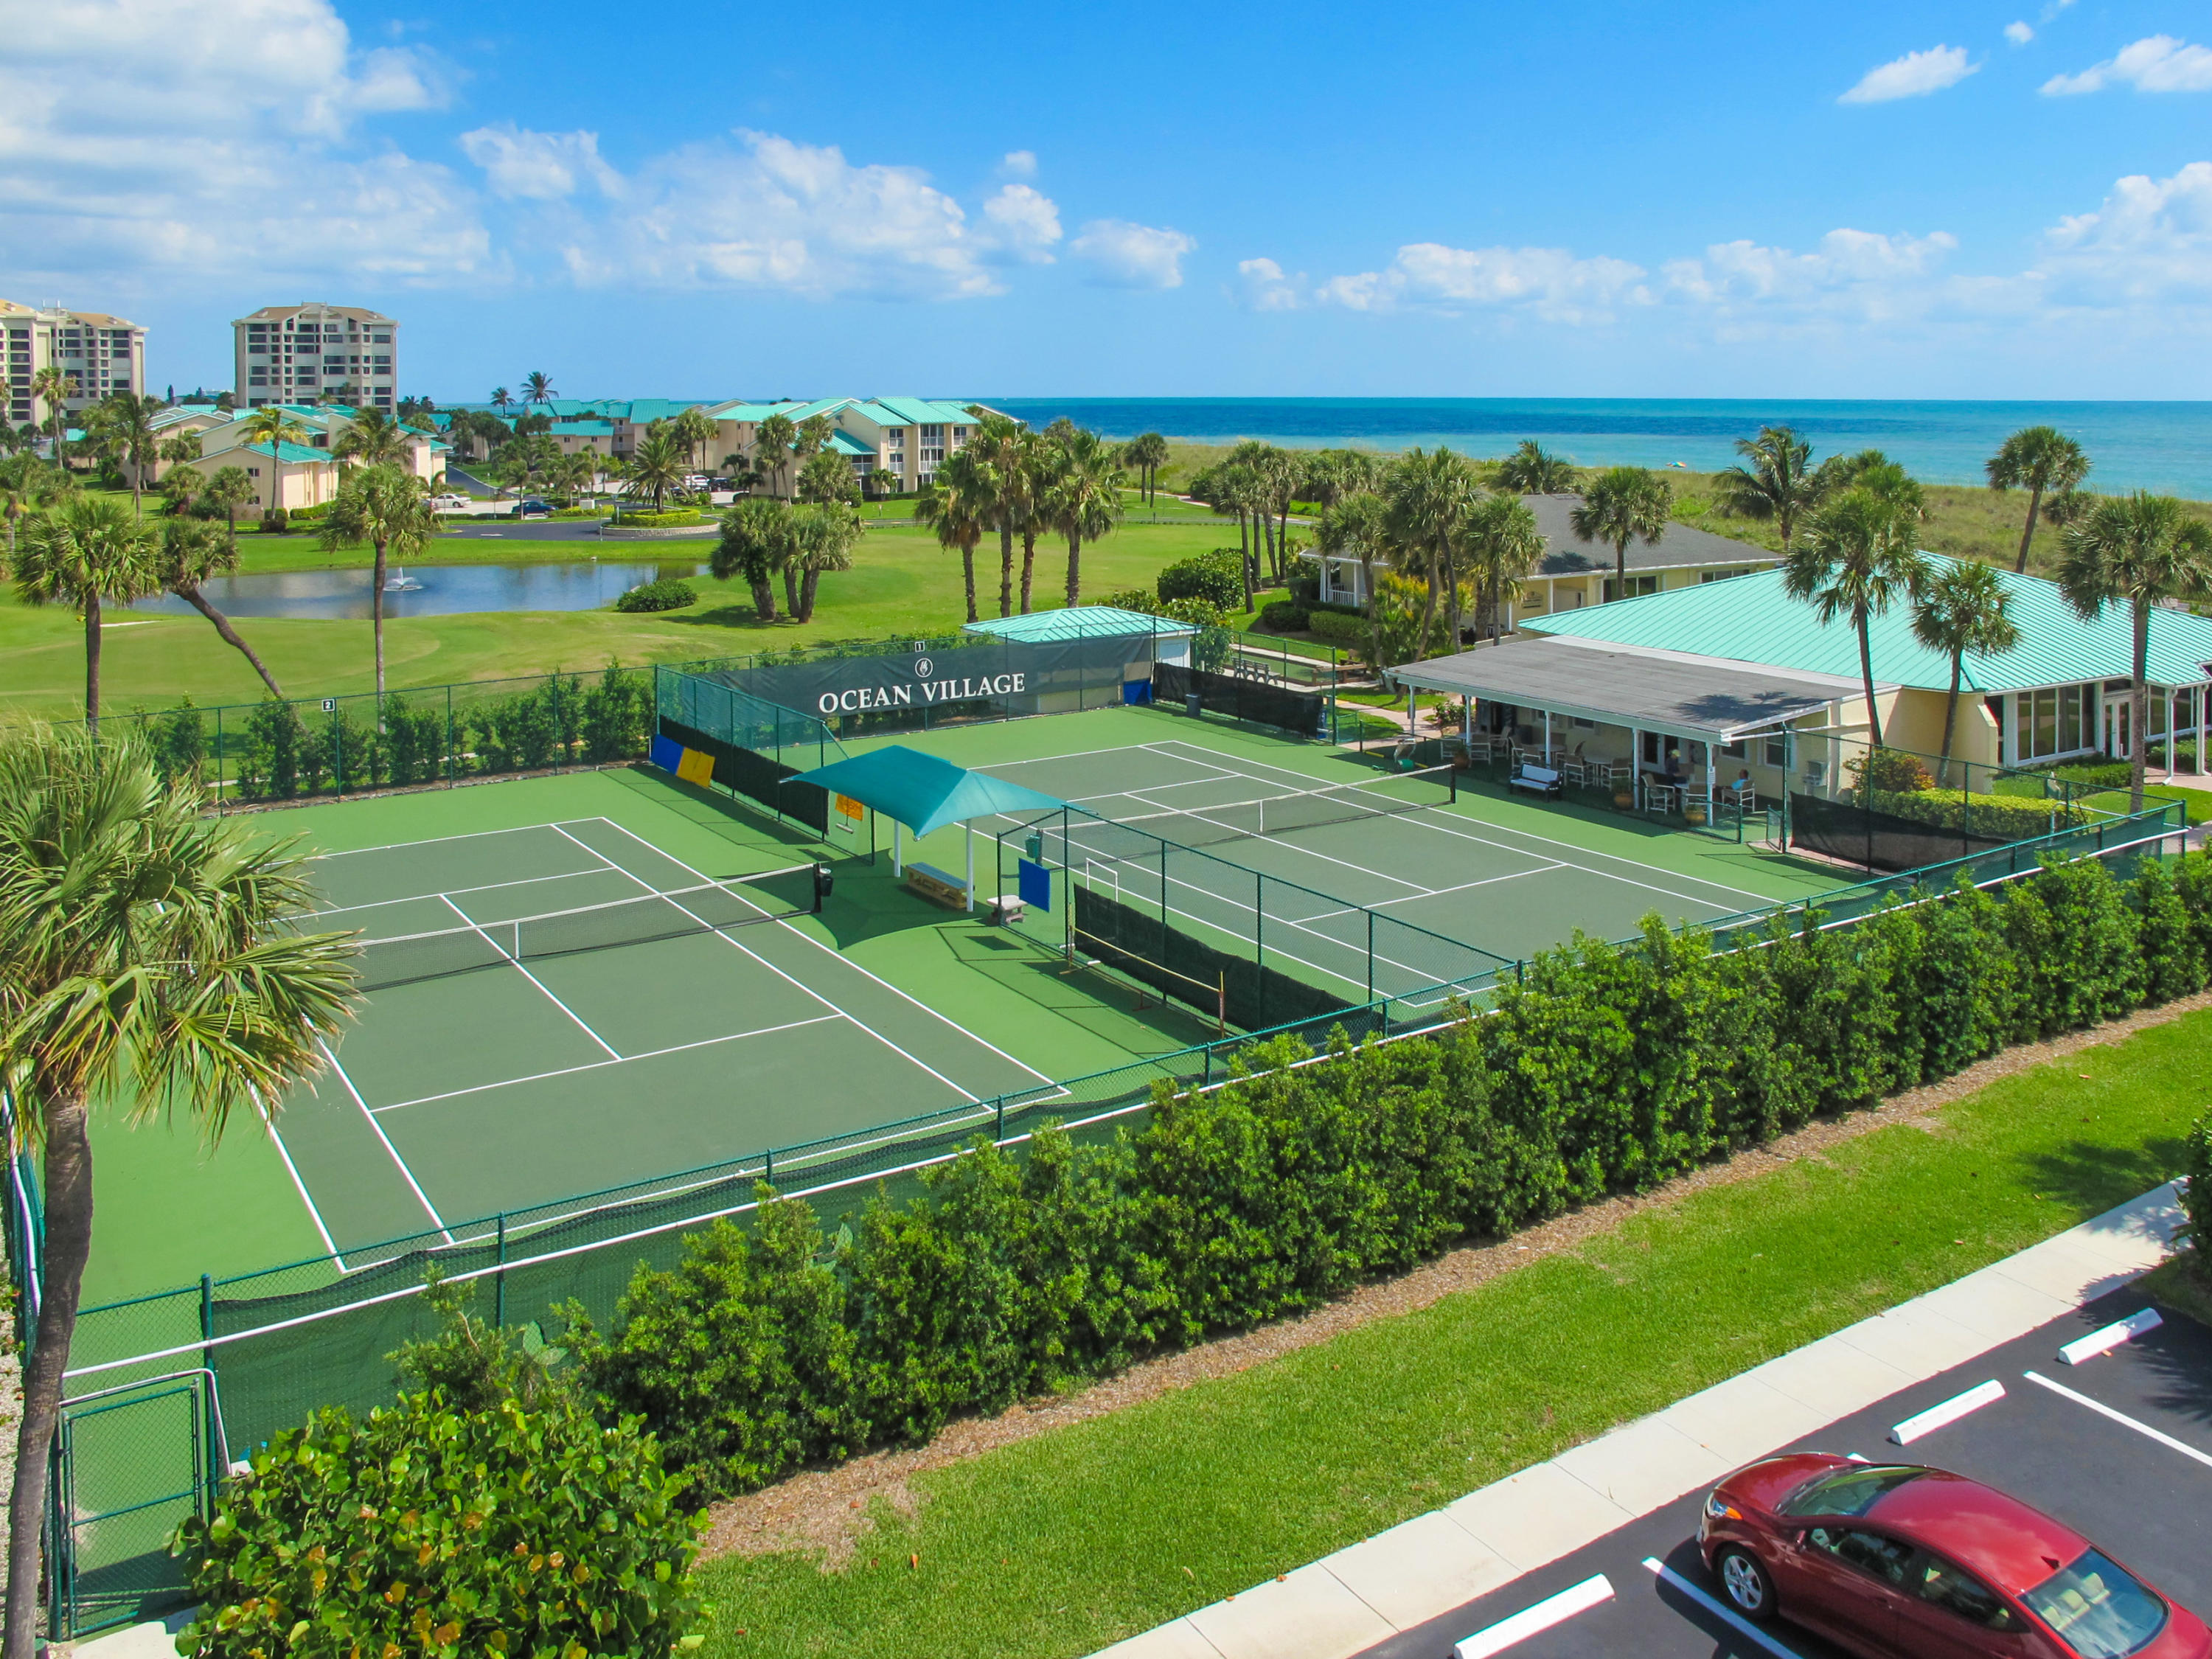 OCEAN VILLAGE FORT PIERCE REAL ESTATE